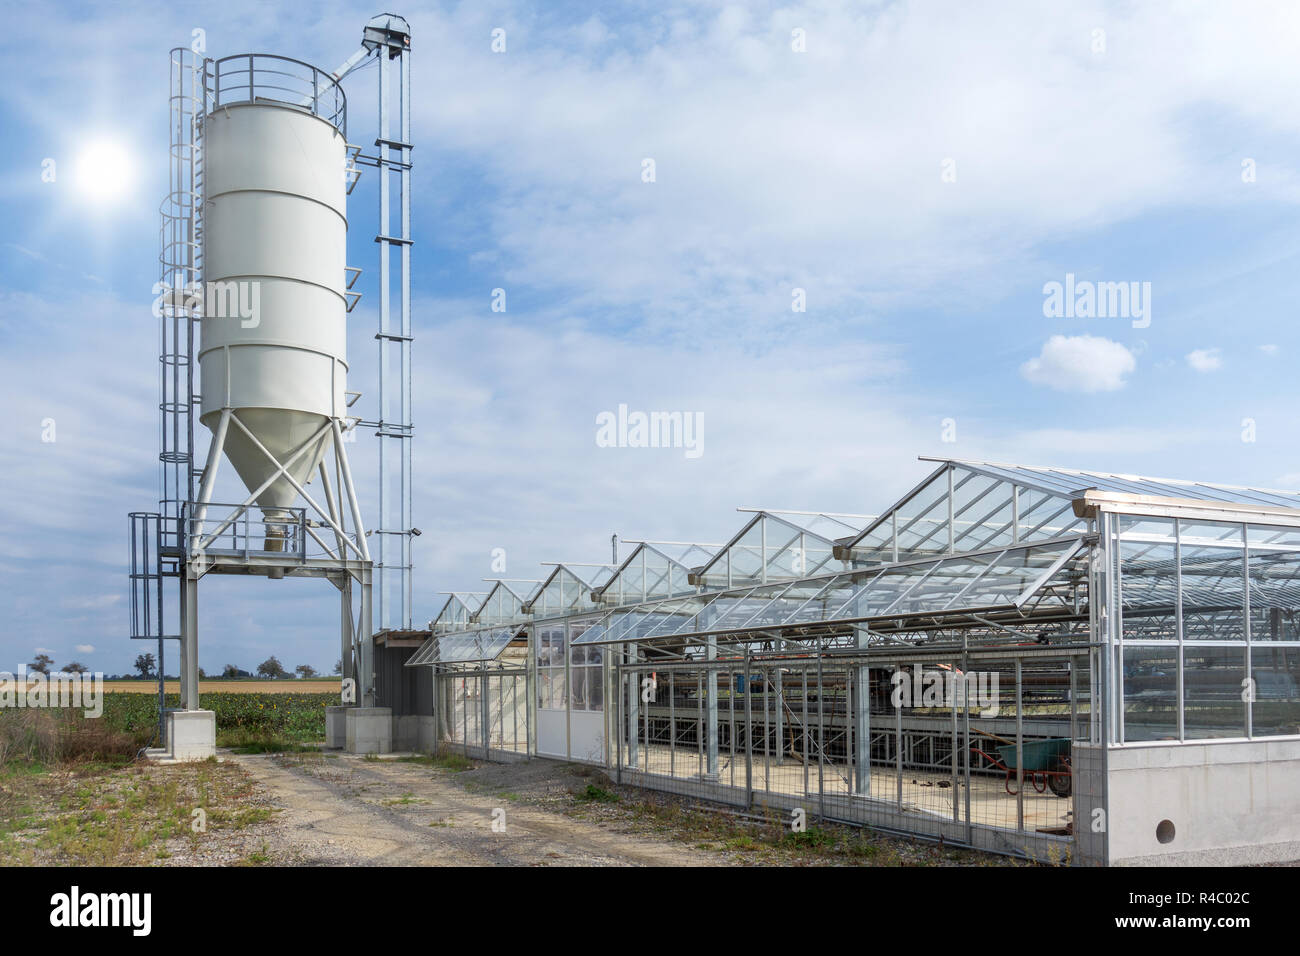 Silo at a sewage sludge drying plant - Stock Image